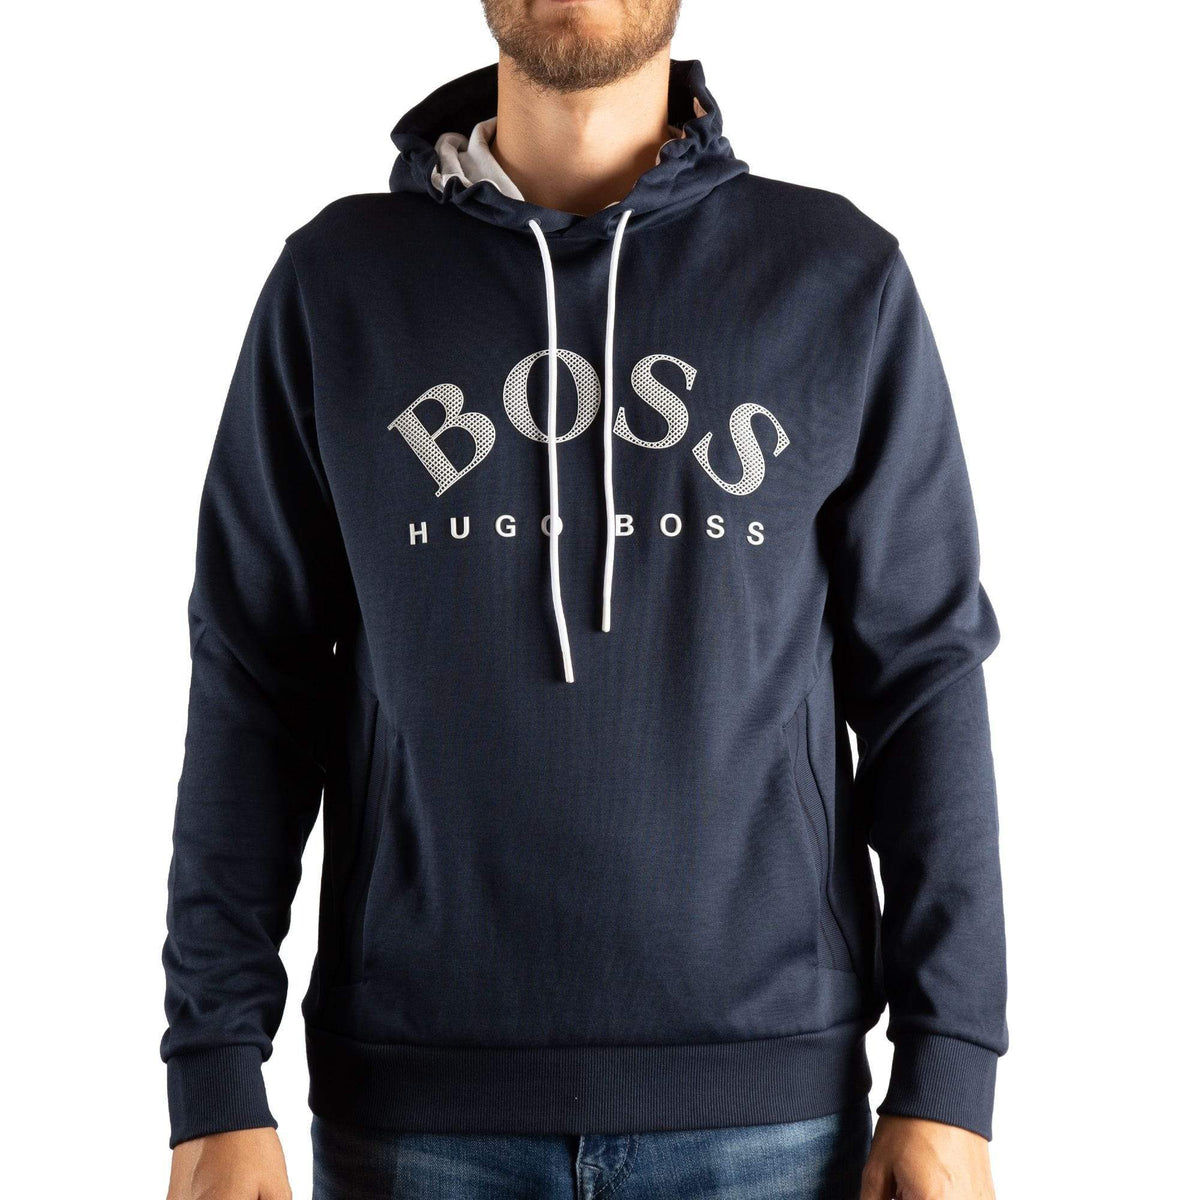 BOSS Logo-Print Hooded Sweatshirt In a Double-Faced Cotton Blend